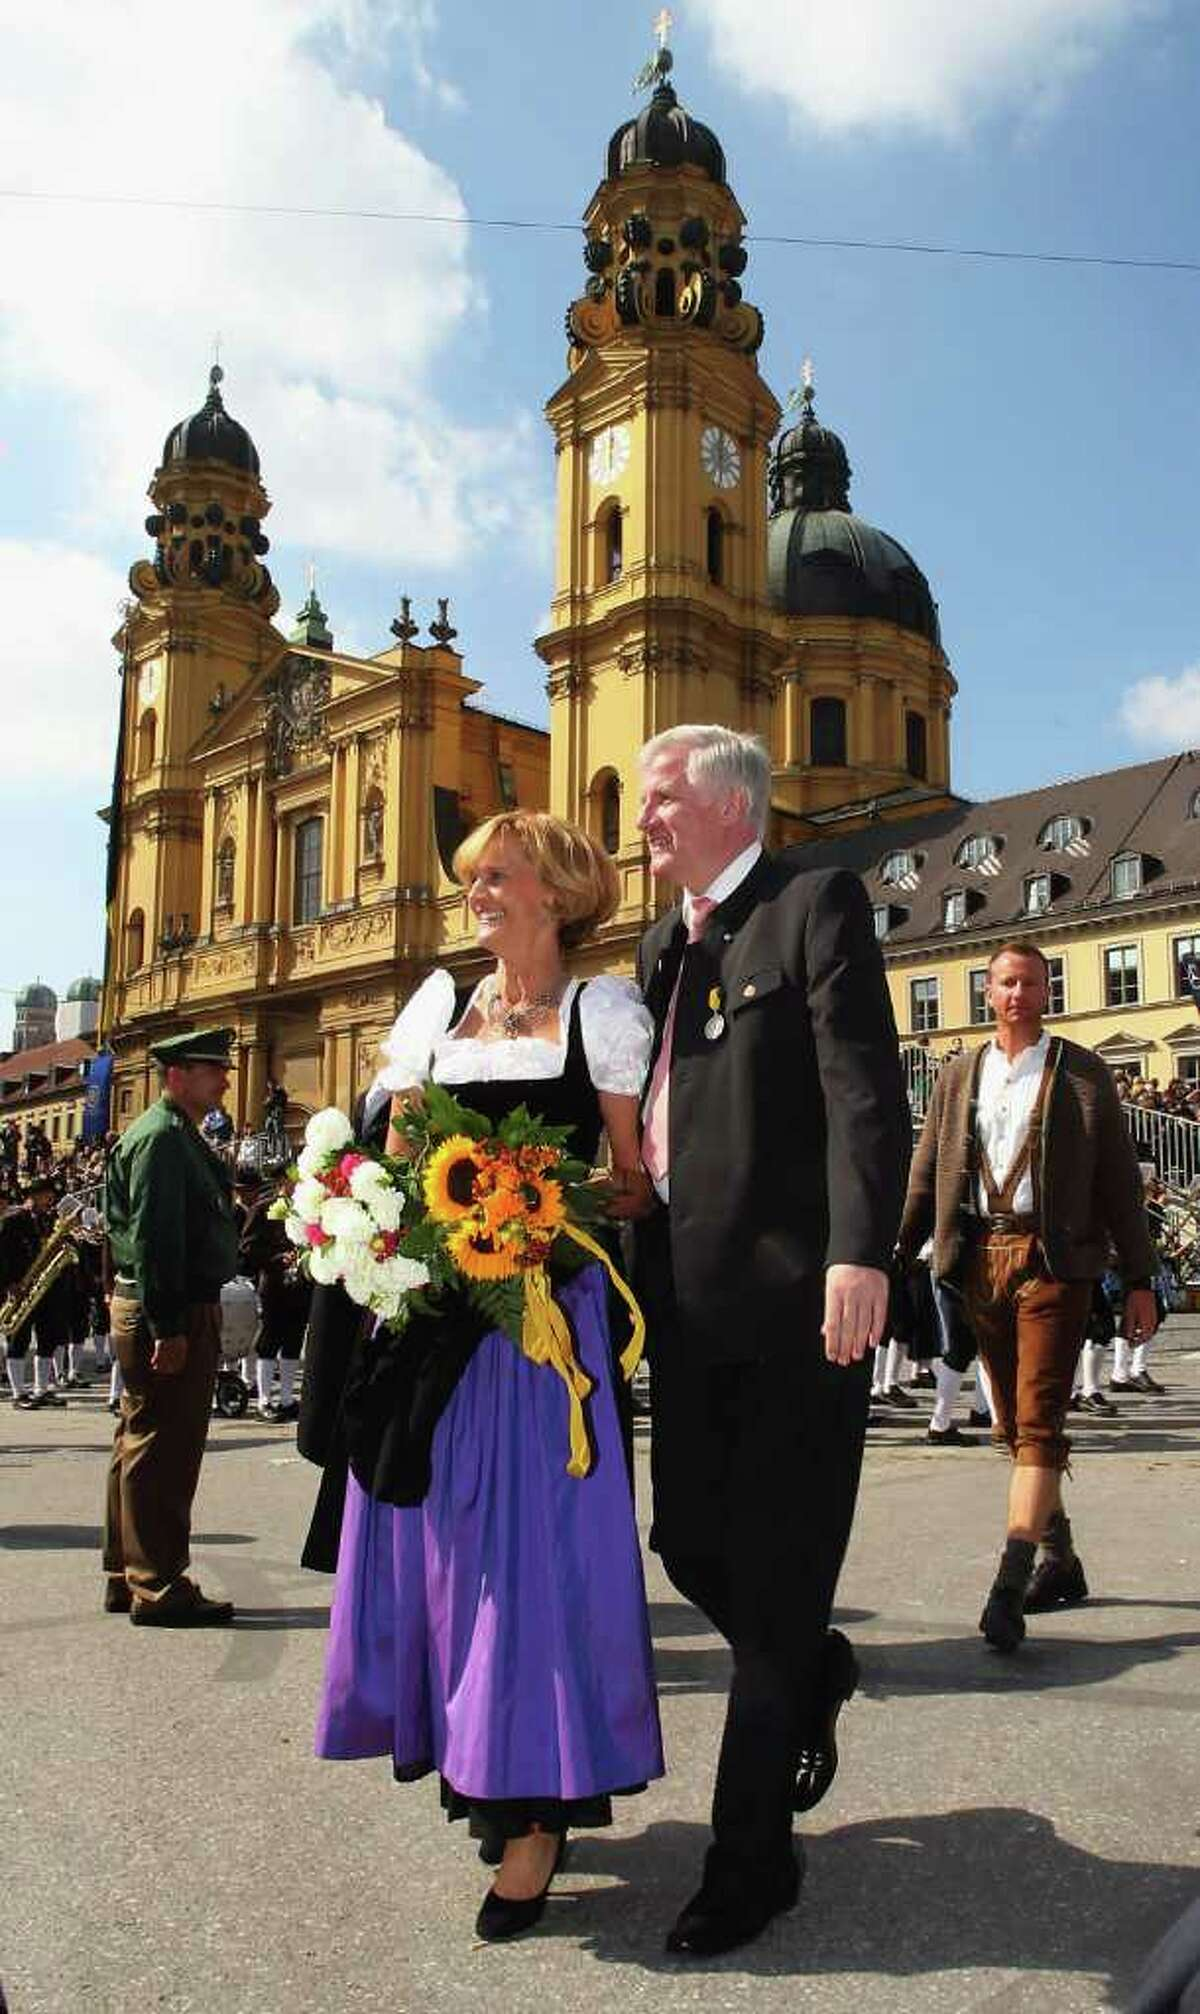 MUNICH, GERMANY - SEPTEMBER 19: Bavarian state premier Horst Seehofer (R) and his wife Karin participate in the traditional riflemen's parade of the Oktoberfest on September 19, 2010 in Munich, Germany. 2010 marks the 200th anniversary of Oktoberfest.The Oktoberfest tradition started in 1810 to celebrate the October 12th marriage of Bavarian Crown Prince Ludwig to the Saxon-Hildburghausen Princess Therese. The citizens of Munich were invited to join in the festivities which were held over five days on the fields in front of the city gates. The main event of the original Oktoberfest was a horse race. The world's biggest beer festival will last this year from September 18 to October 4. (Photo by Alexandra Beier/Getty Images) *** Local Caption *** Horst Seehofer;Karin Seehofer